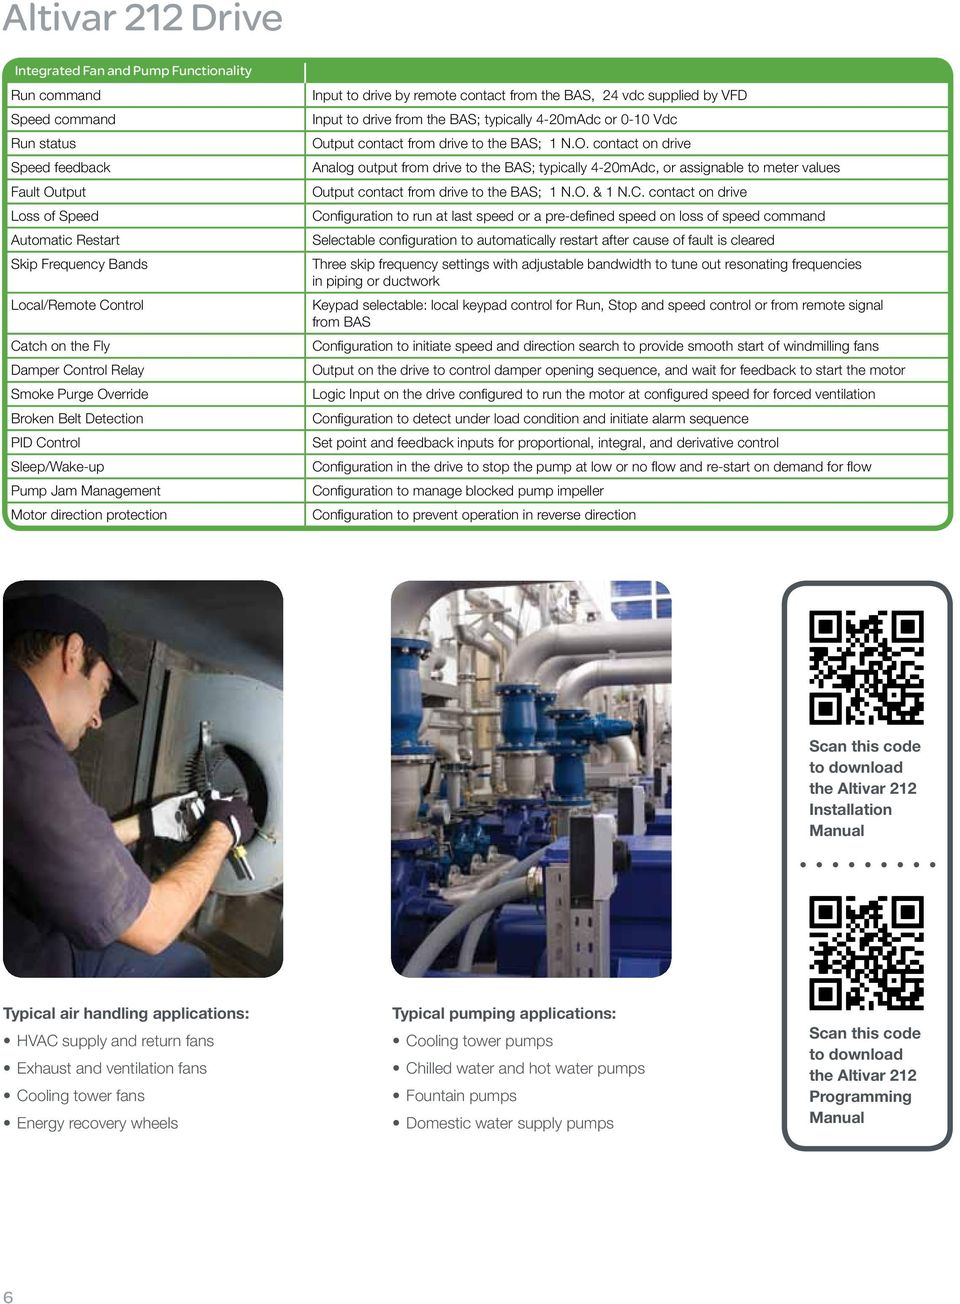 Altivar 212 Drive Selection Guide Make The Most Of Your Energy Sm Motor Restart Control Relay Bas 24 Vdc Supplied By Vfd Input To From Typically 4